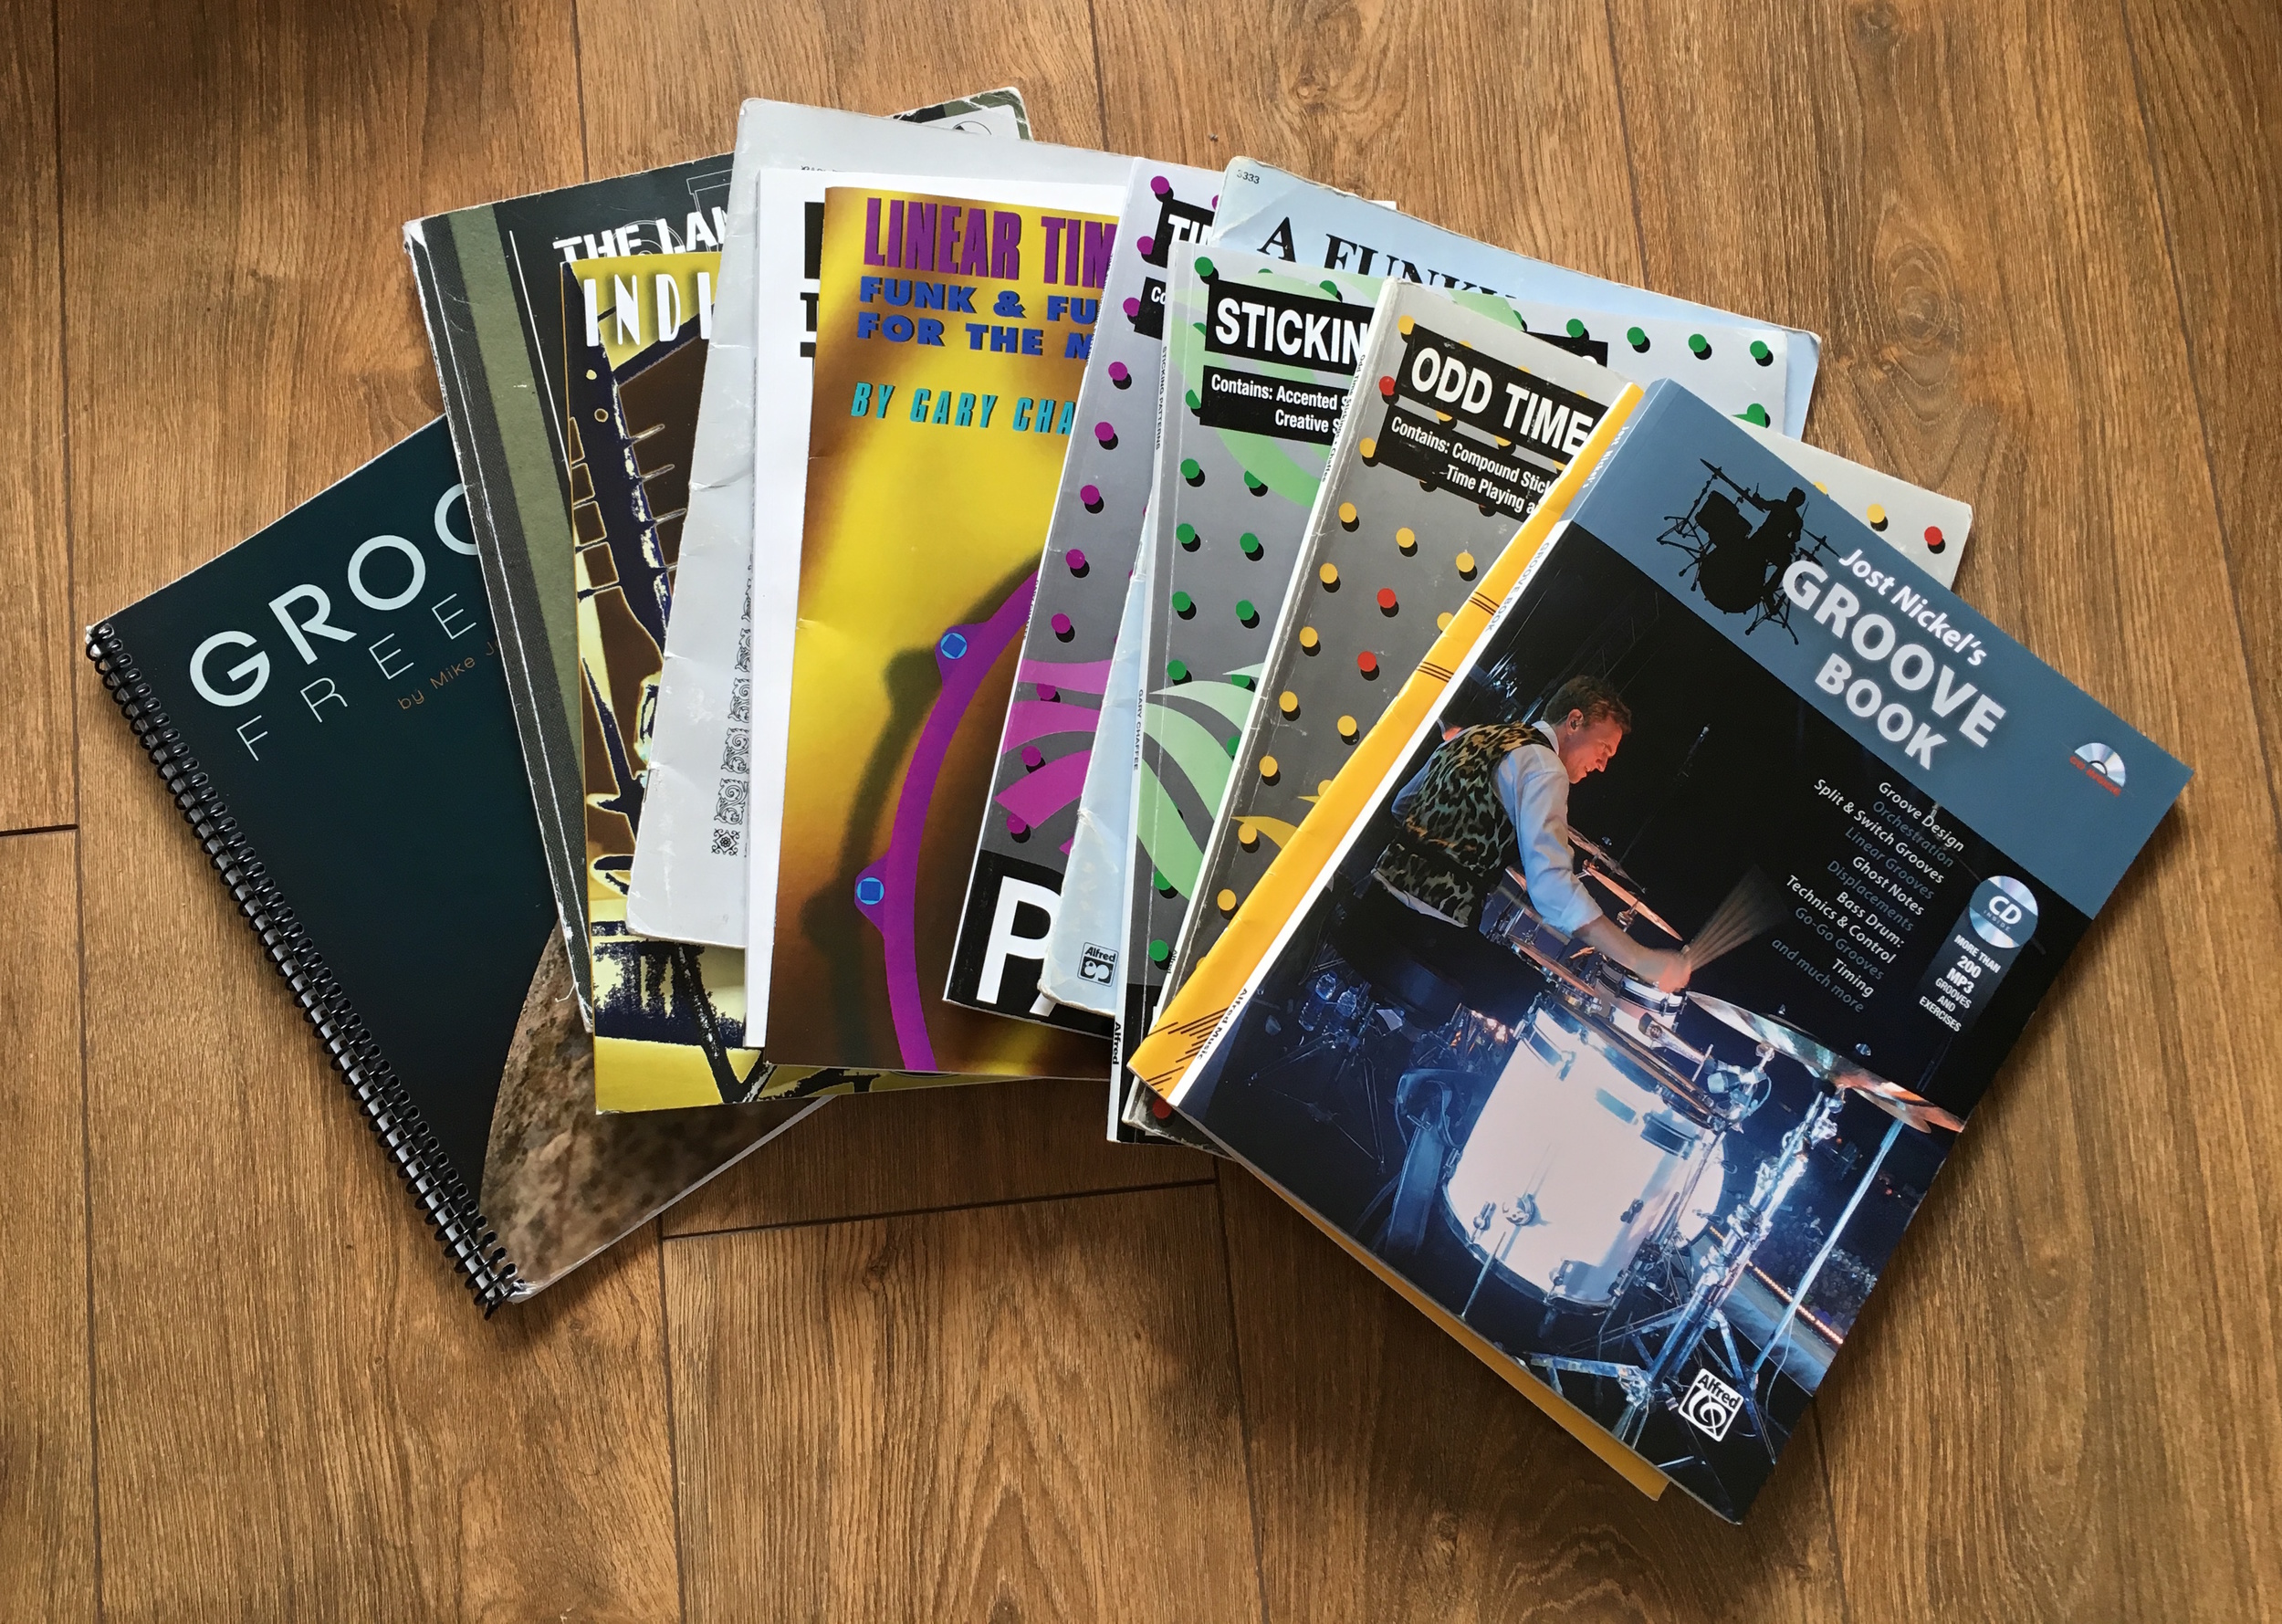 A small part of my collection of drum books